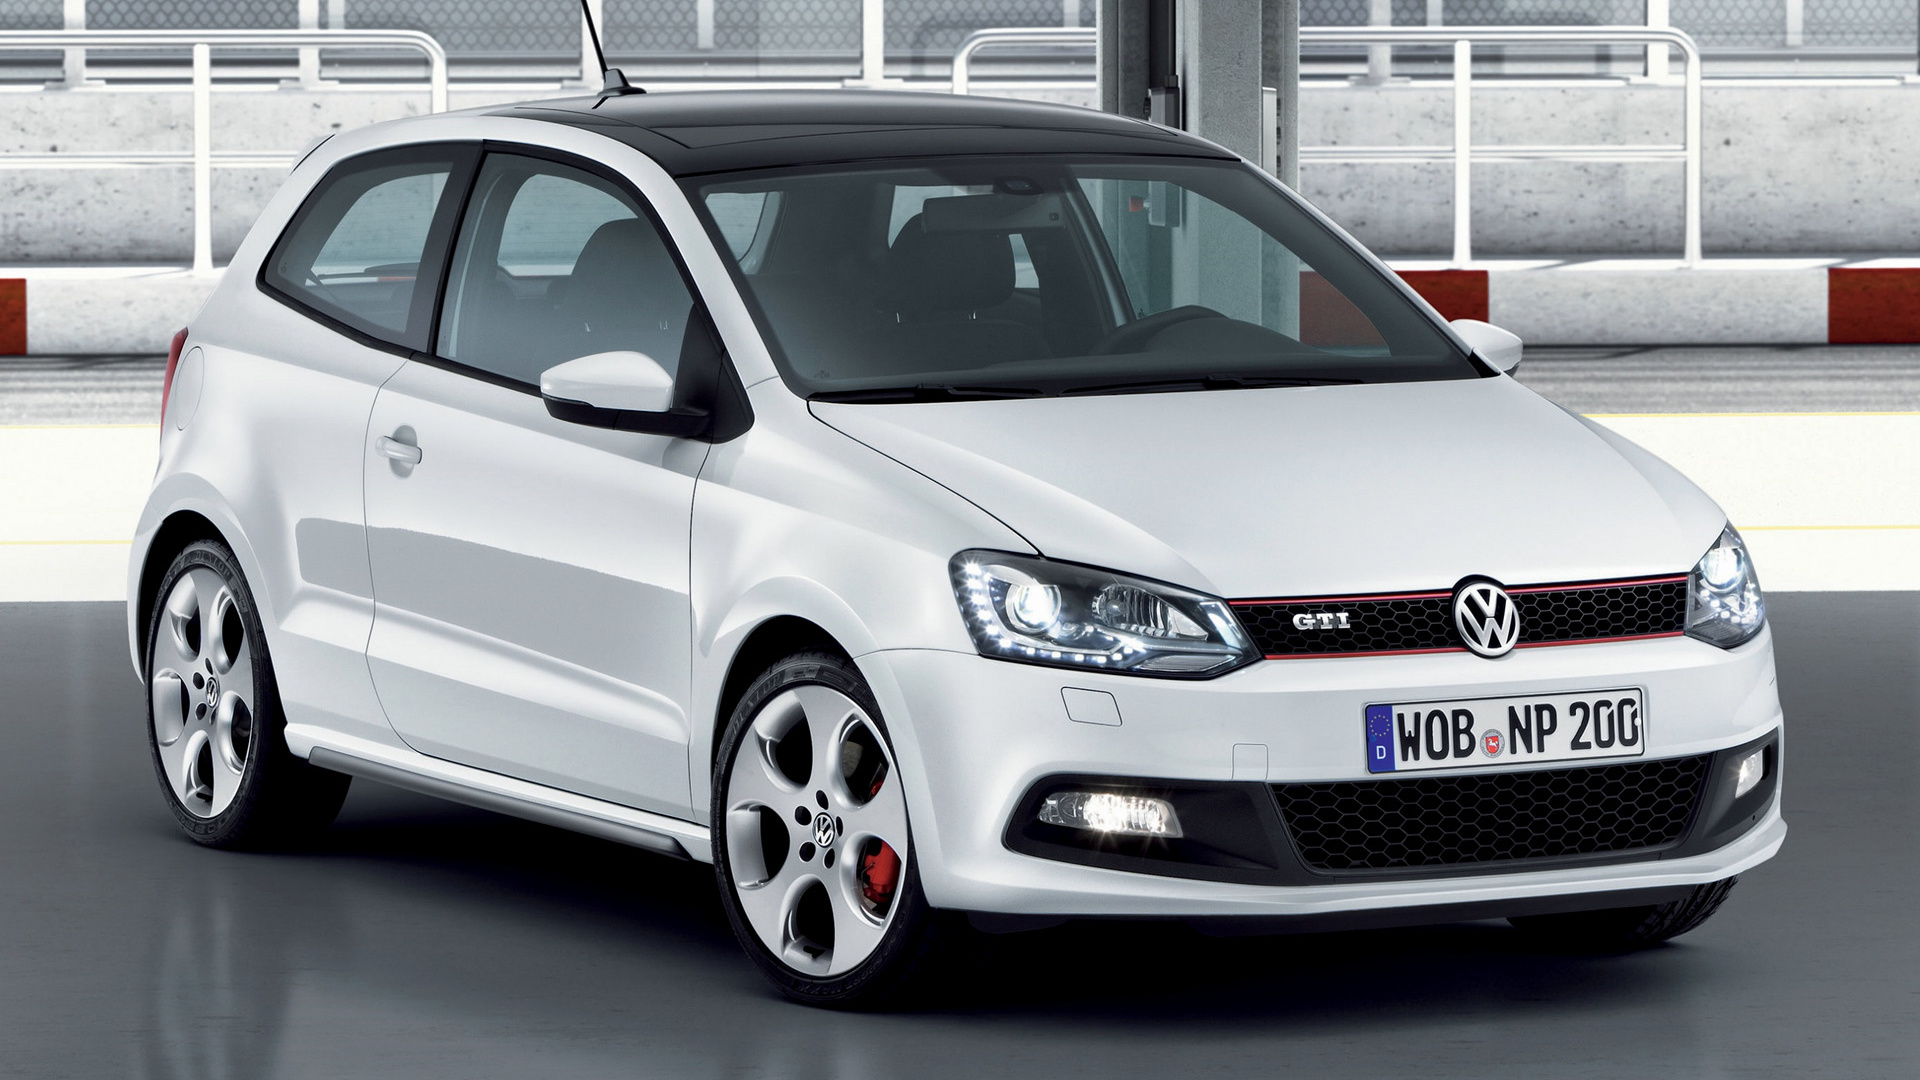 Volkswagen Polo Gti 3 Door 2010 Wallpapers And Hd Images